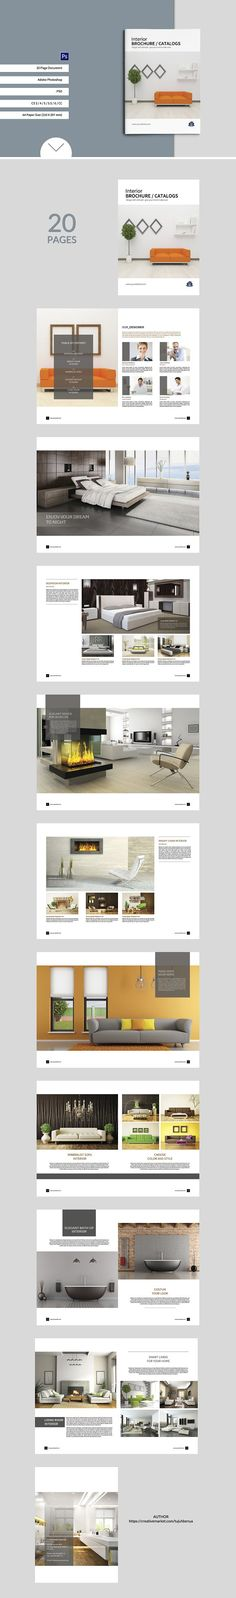 Interior Design Brochure A Design Template  Corporate Brochures